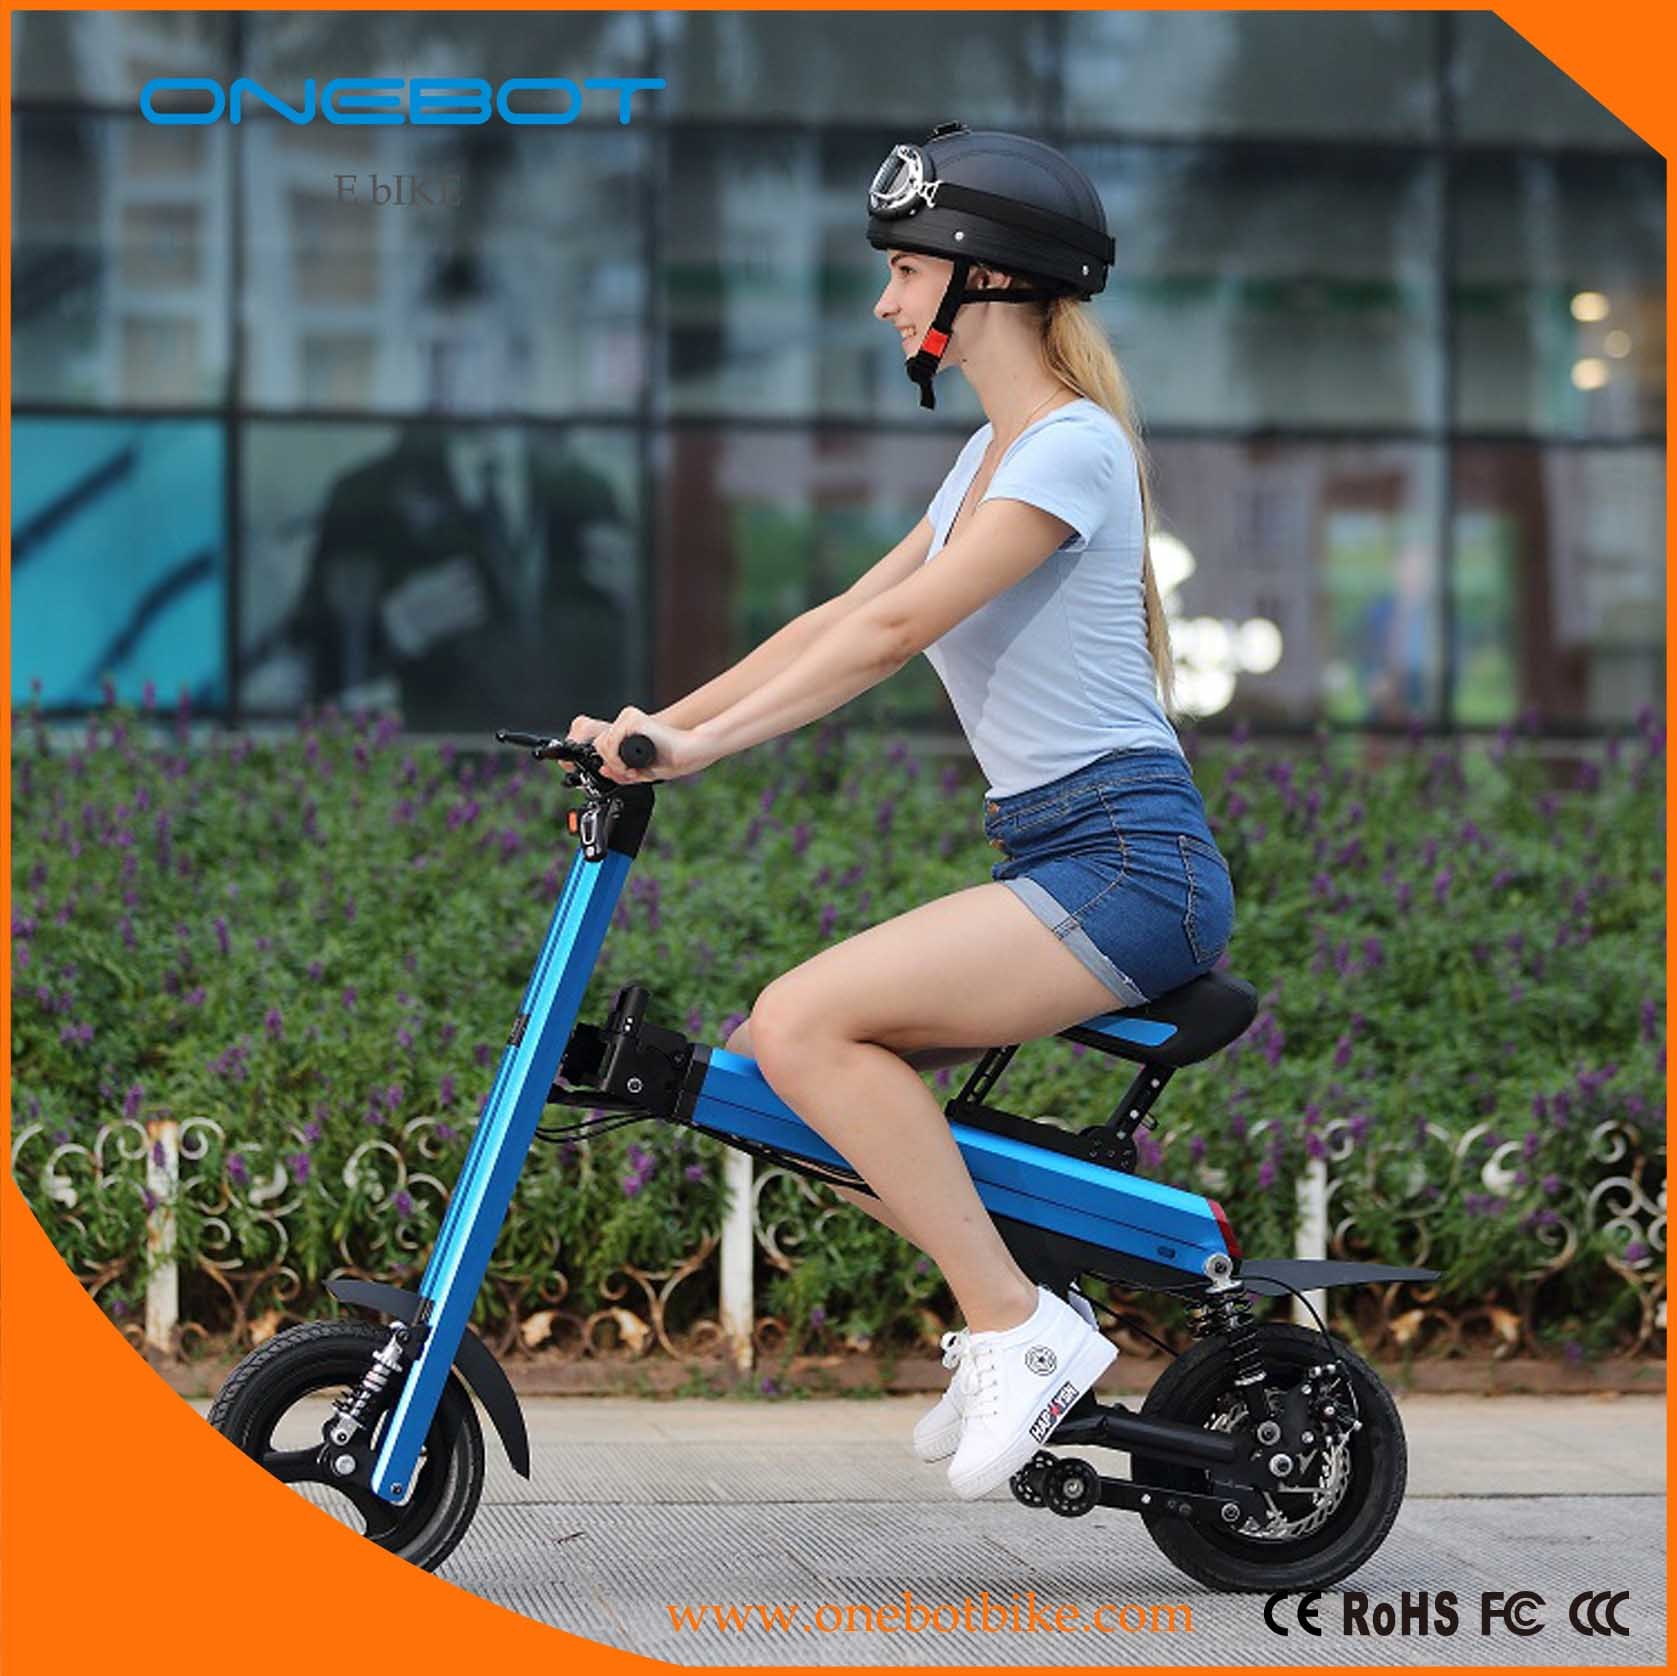 """12"""" 36V 500W Lady City Ebike Electric Scooter"""